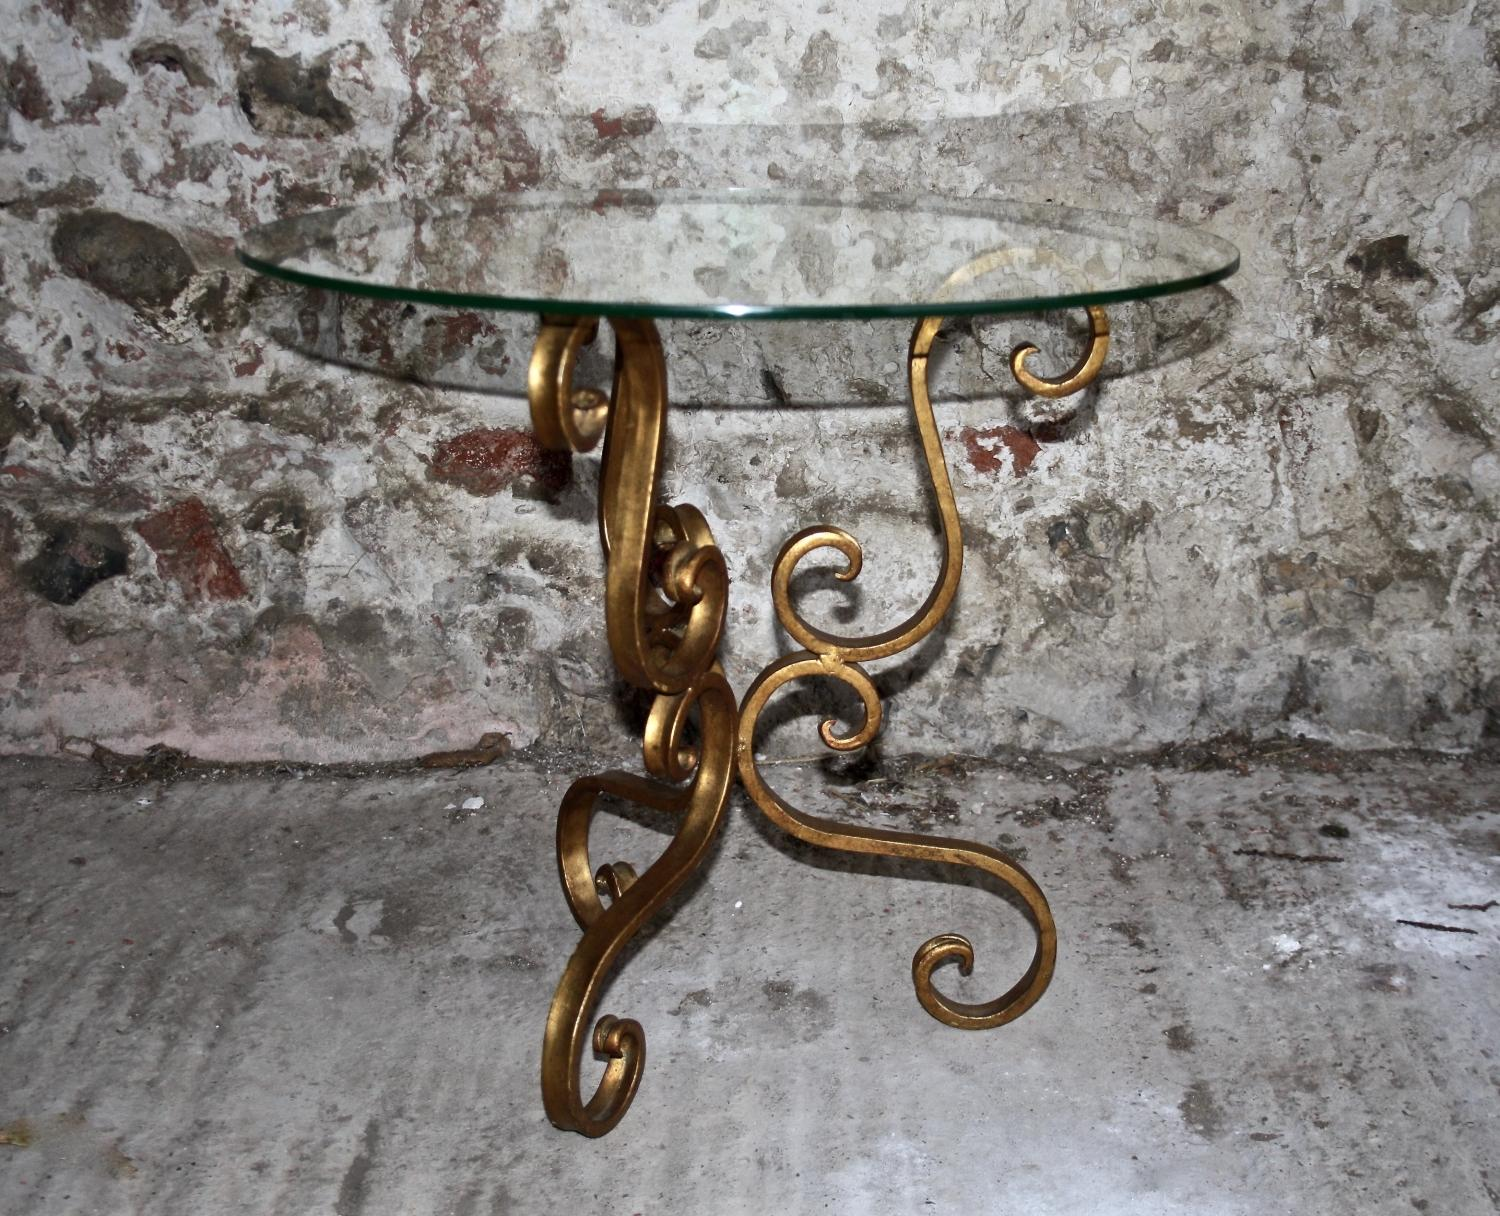 Glass topped, metal based side table